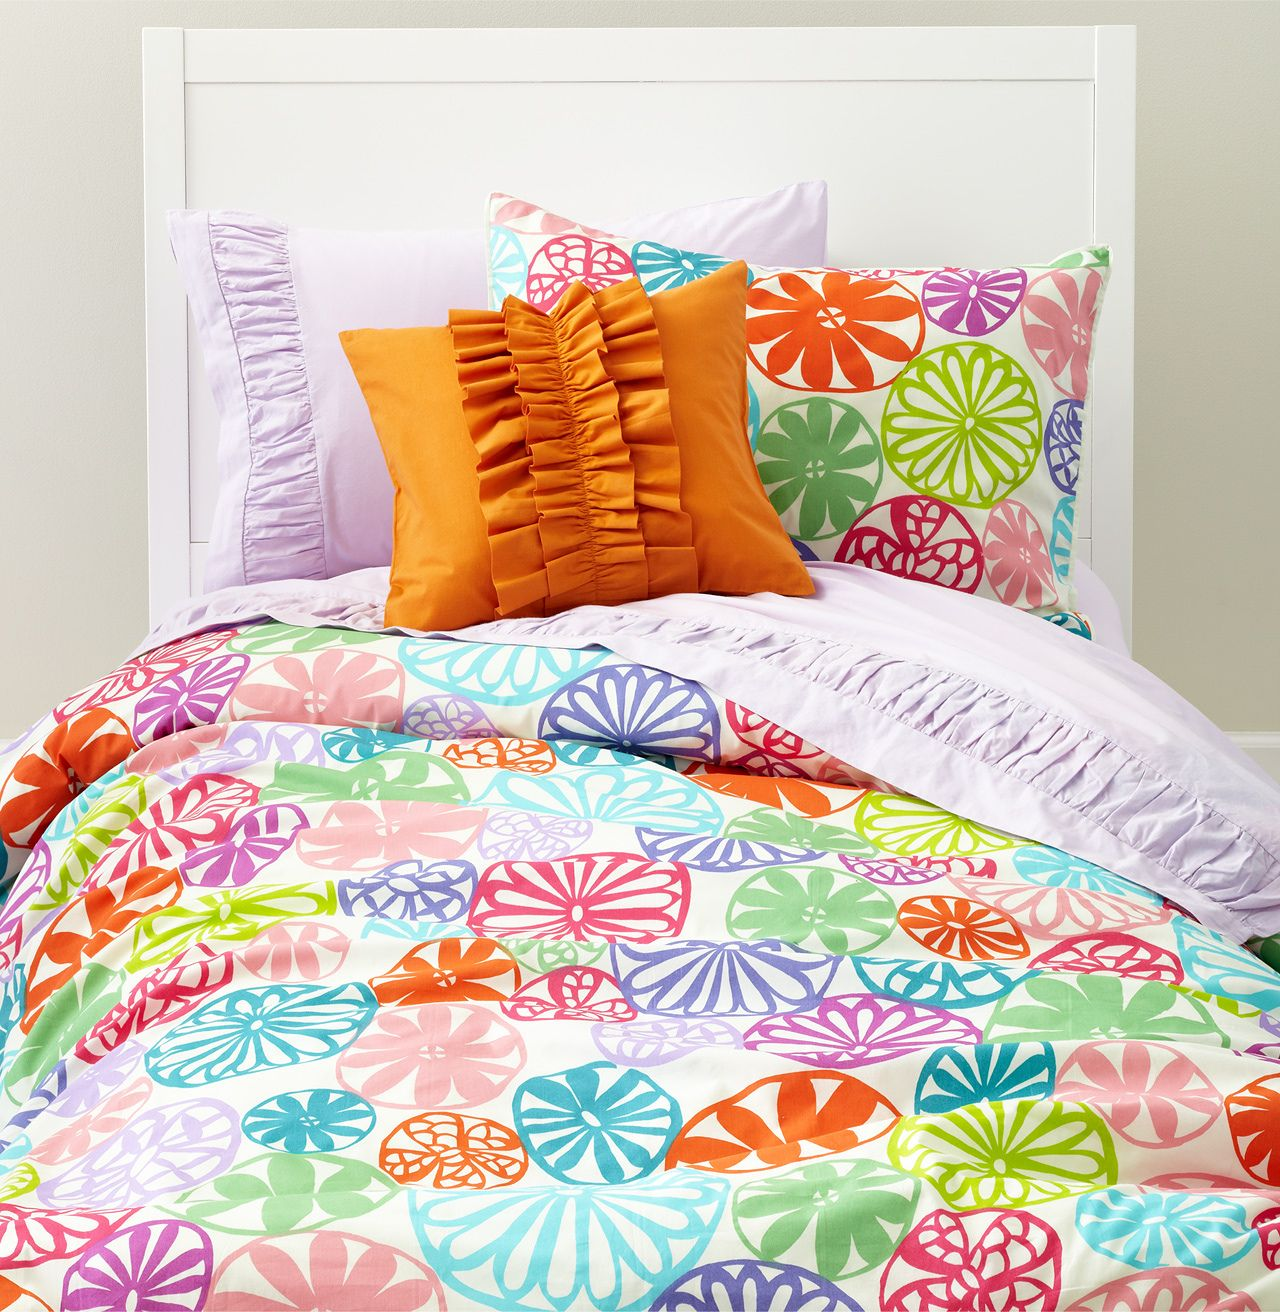 sunshine day Bedding designed exclusively for Land of Nod